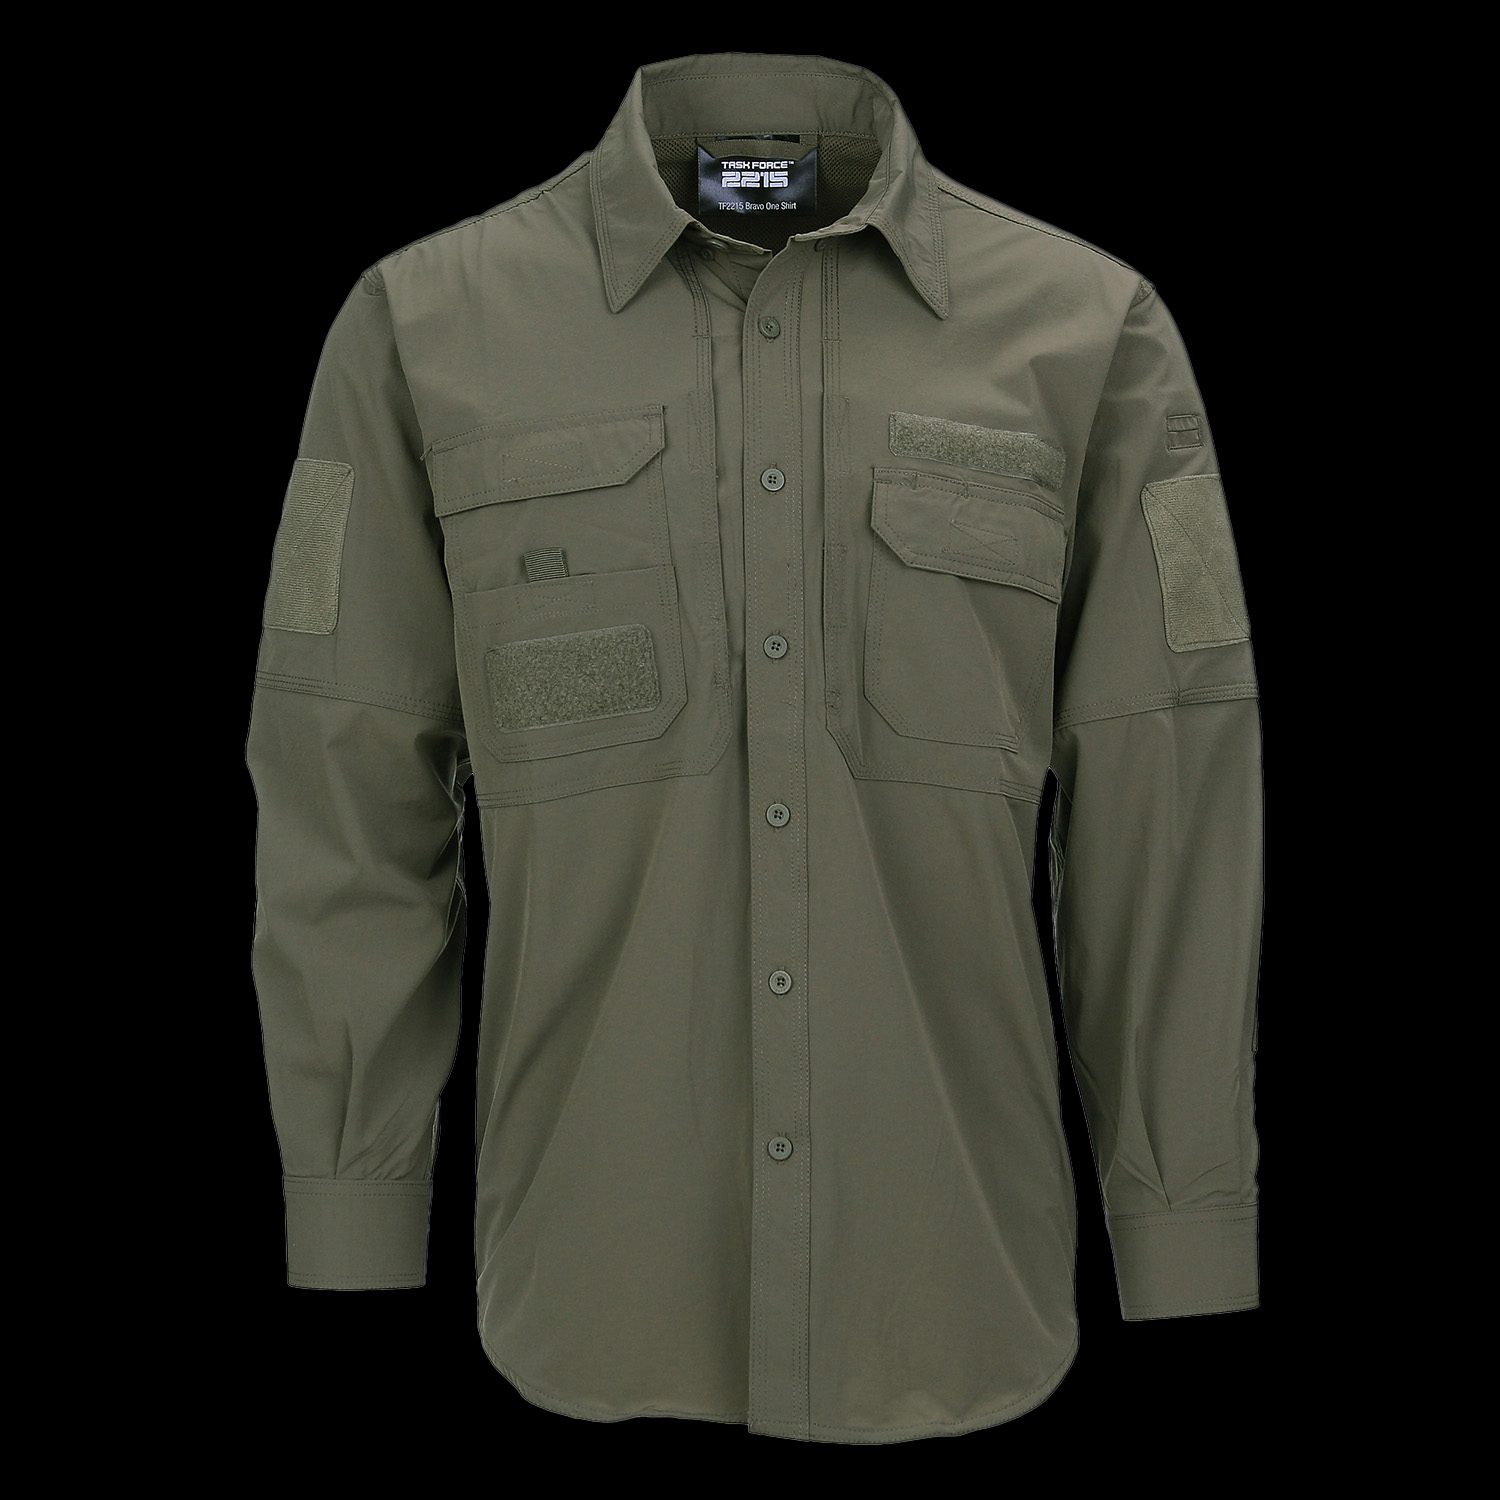 TF-2215 Bravo One Shirt Ranger Green